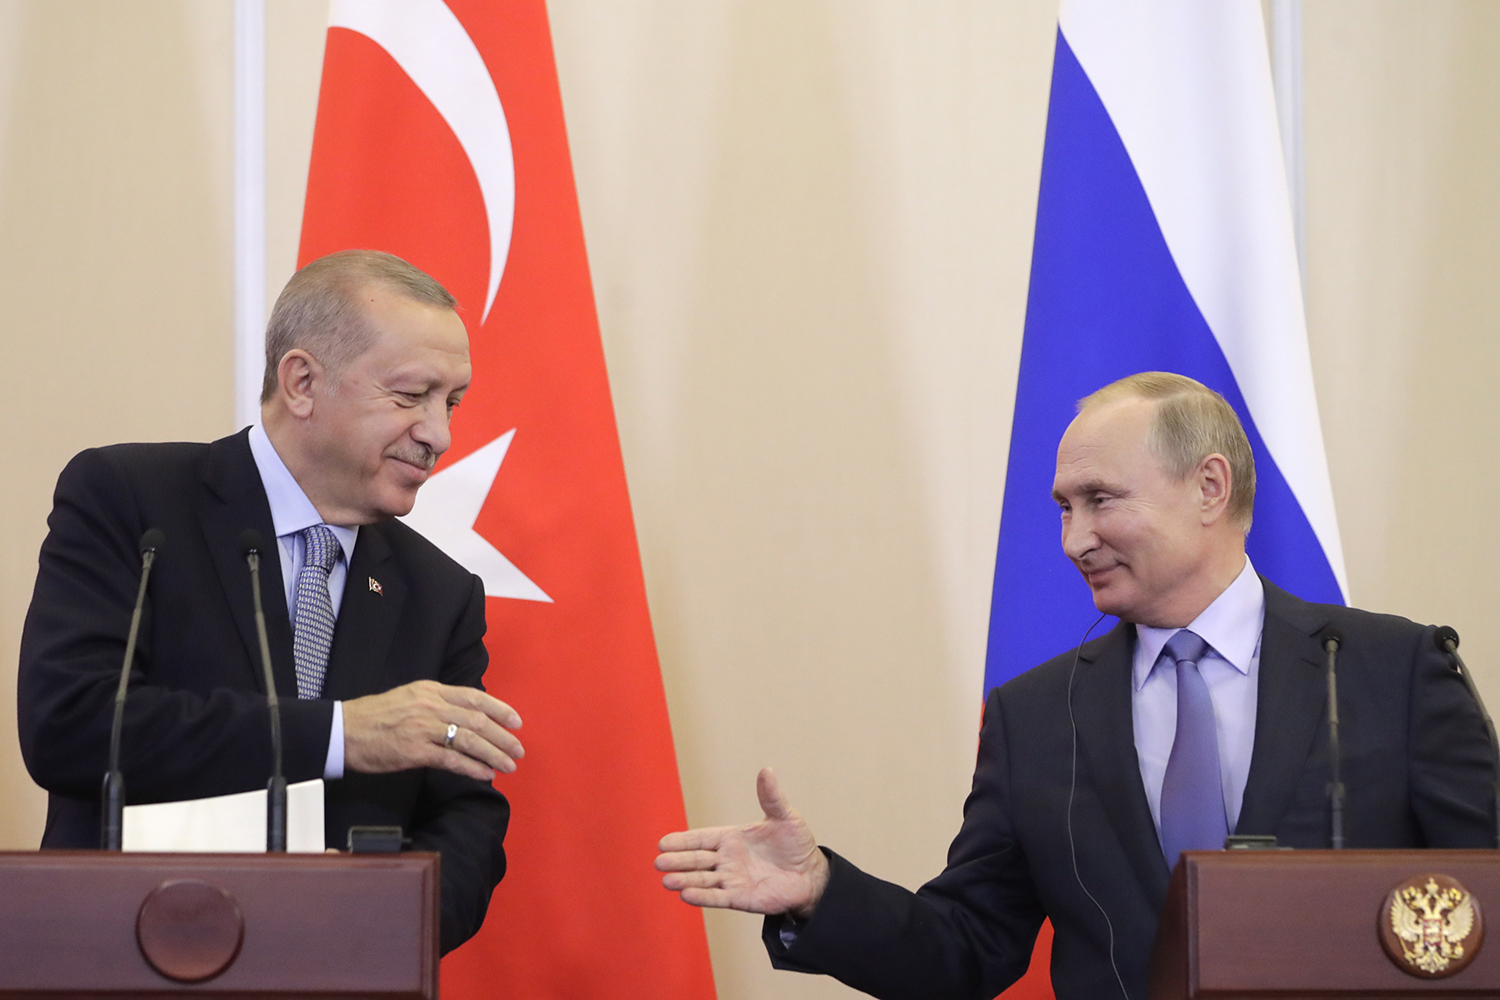 Turkey's President Recep Tayyip Erdogan and Russian President Vladimir Putin shake hands a joint news conference on Syria following their meeting in Sochi, Russia on Oct. 22.